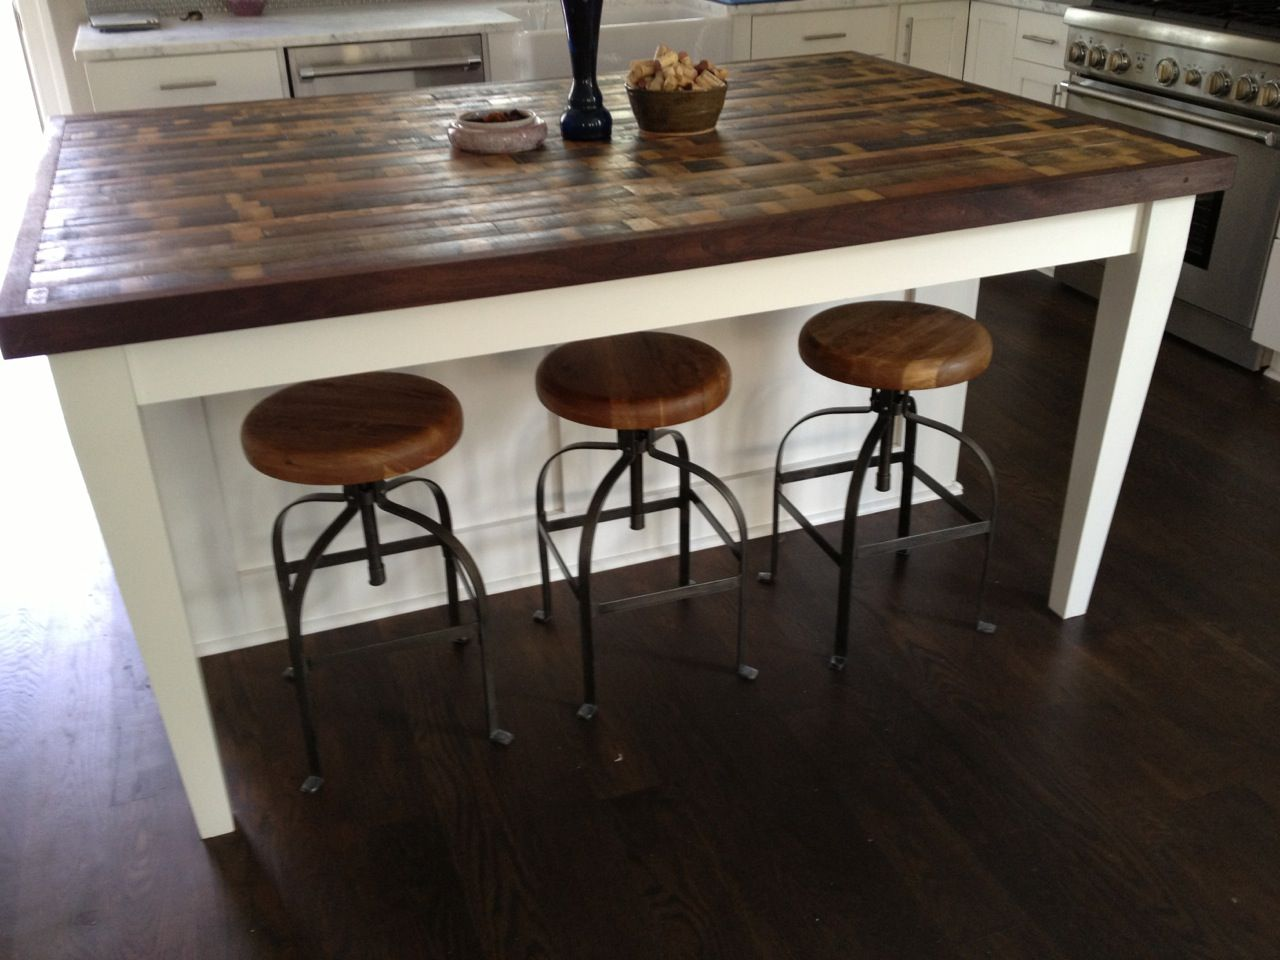 Best 20+ Wood kitchen island ideas on Pinterest | Island cart ...